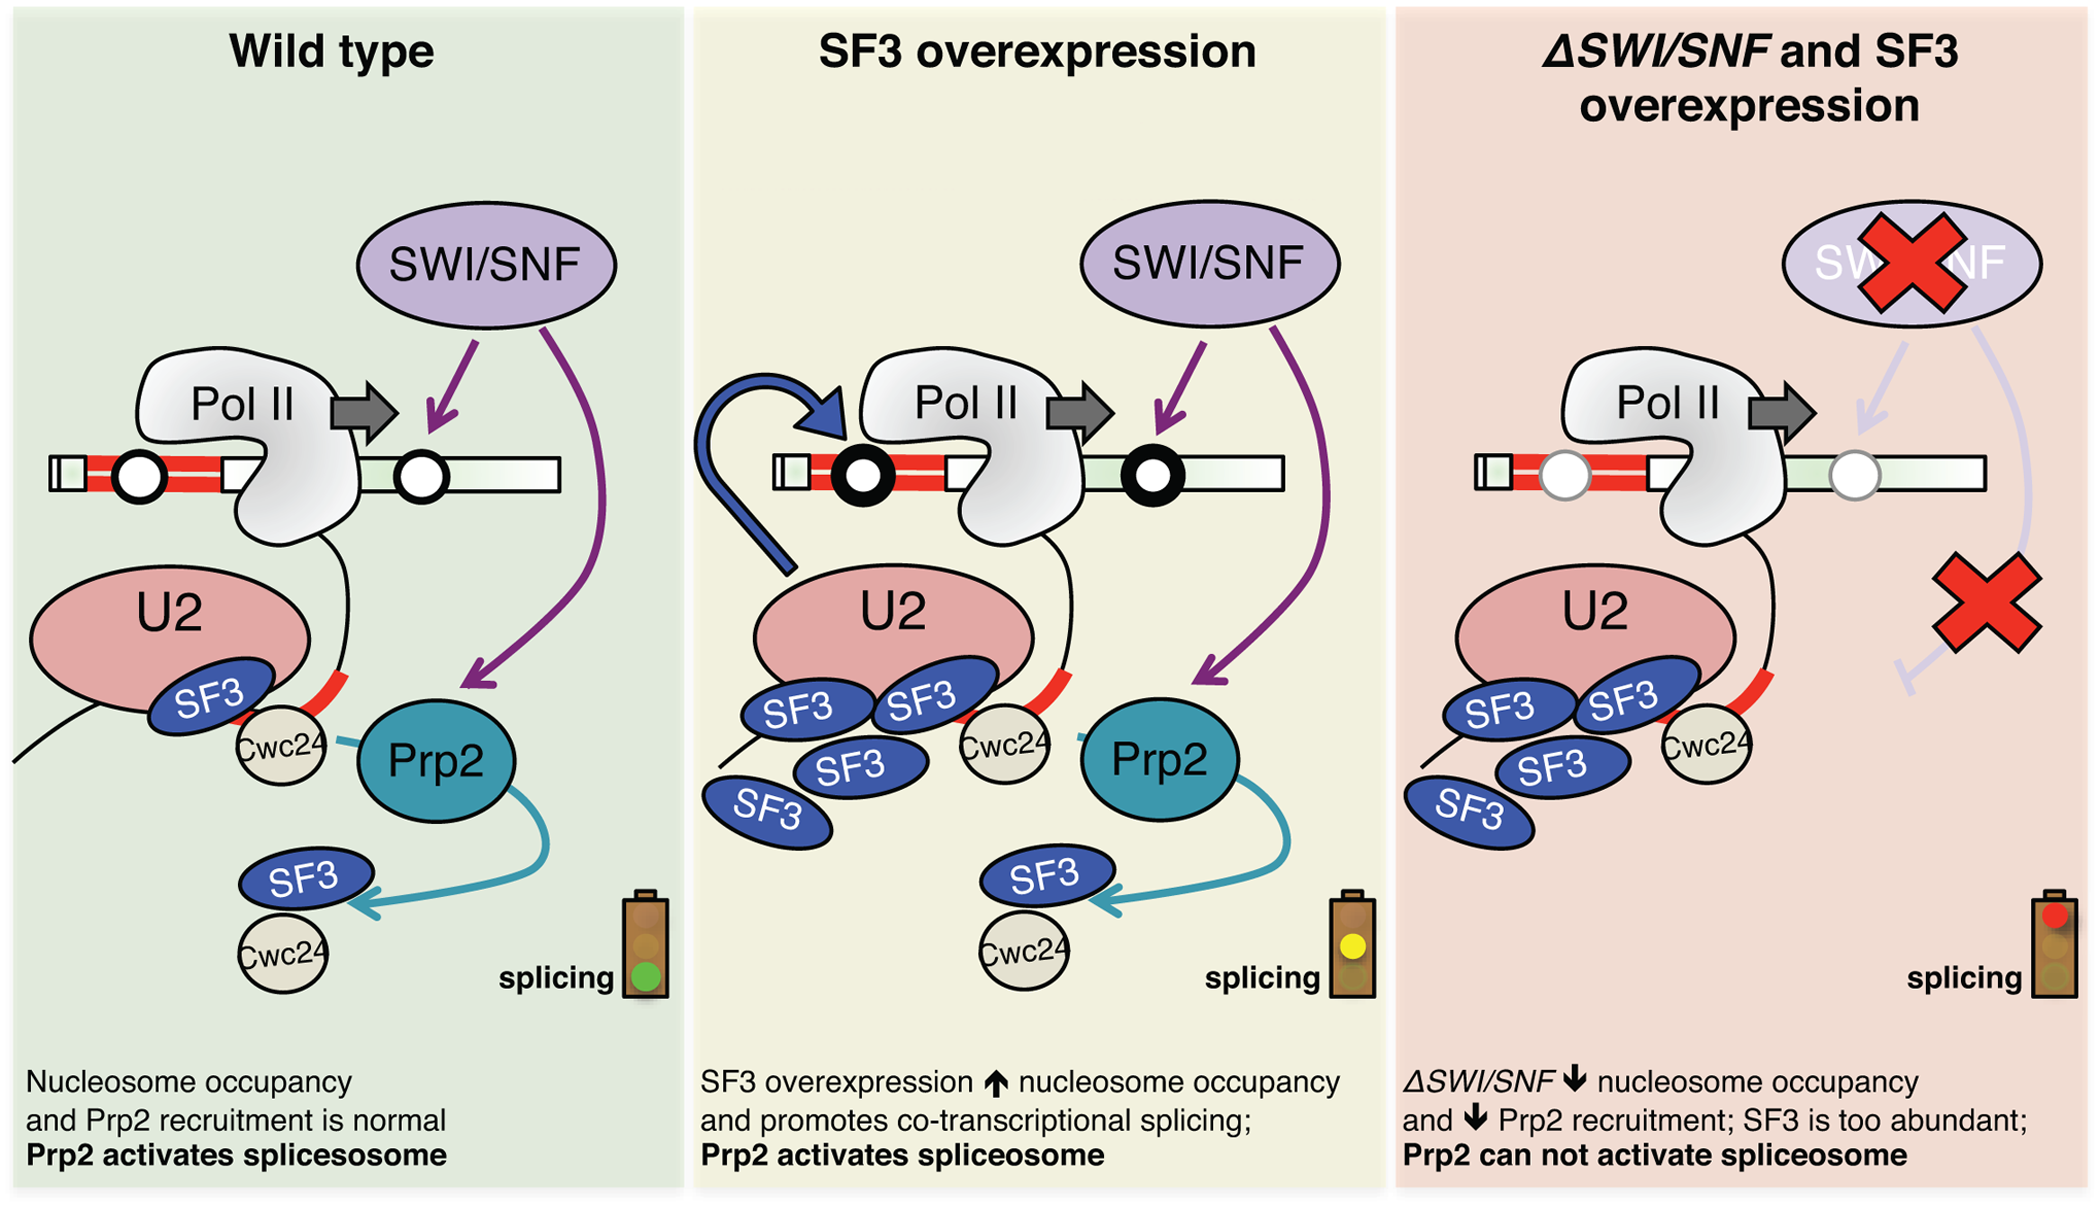 Model illustrating the effect of SF3 overexpression and deletion of SWI/SNF on splicesome activation, nucleosome occupancy and RNAPII elongation.